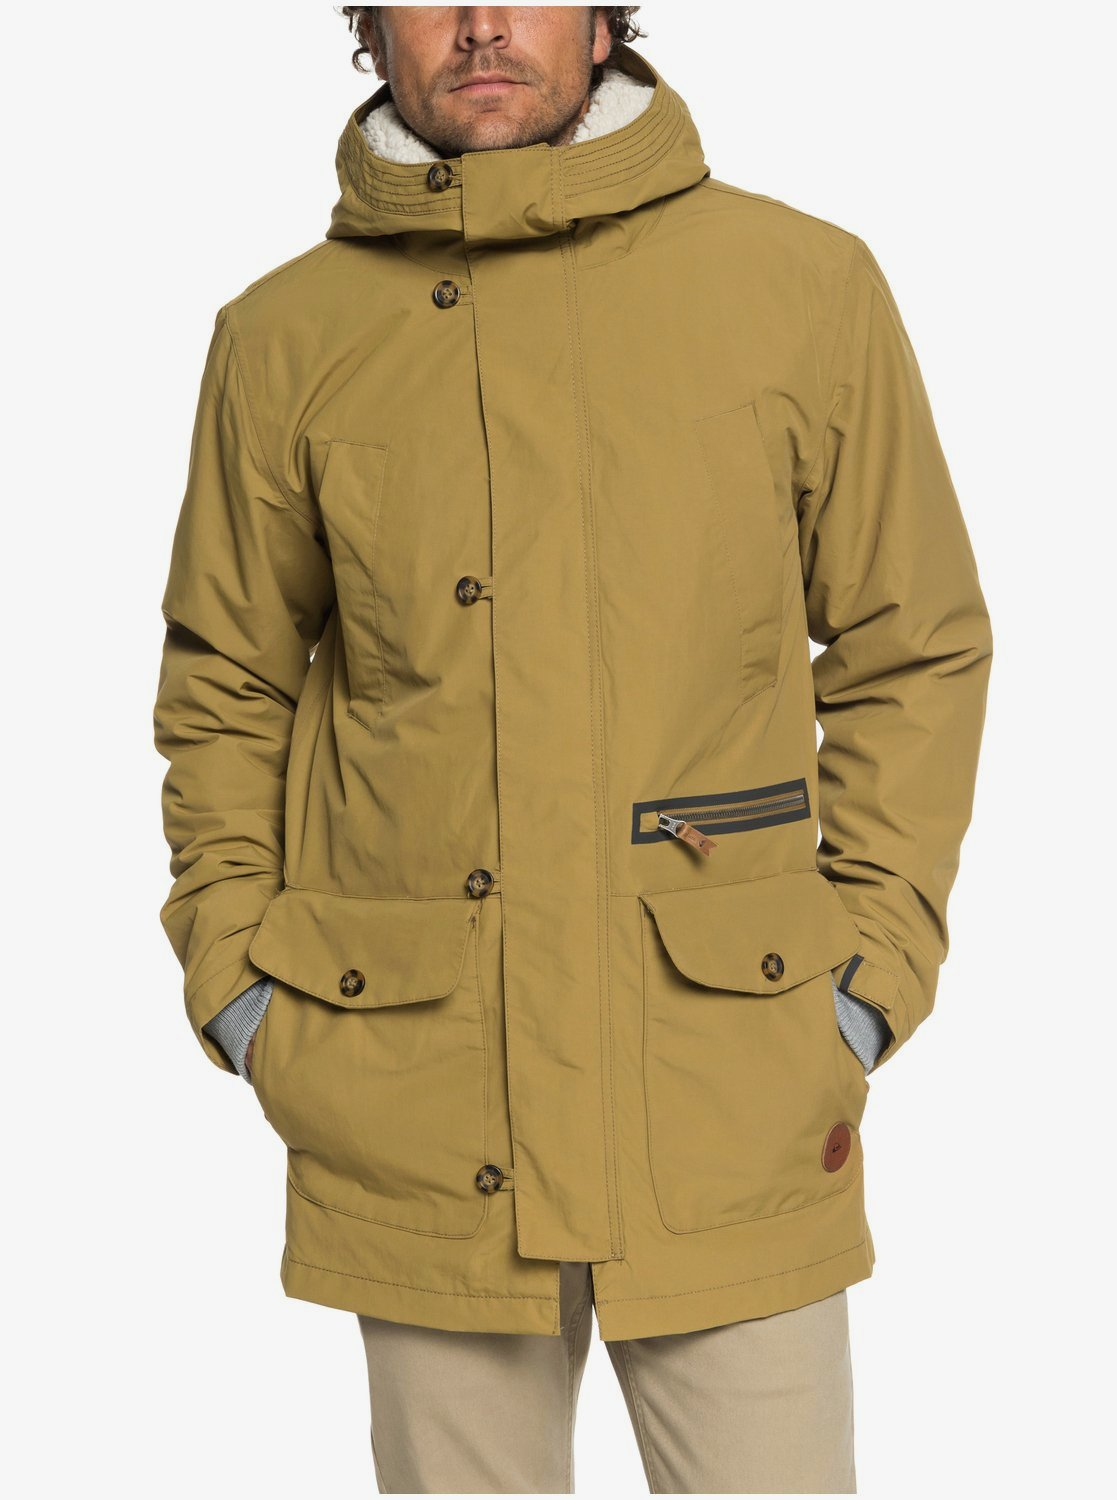 shades of search for original beautiful style Sedona - Waterproof 3-In-1 Parka Jacket for Men